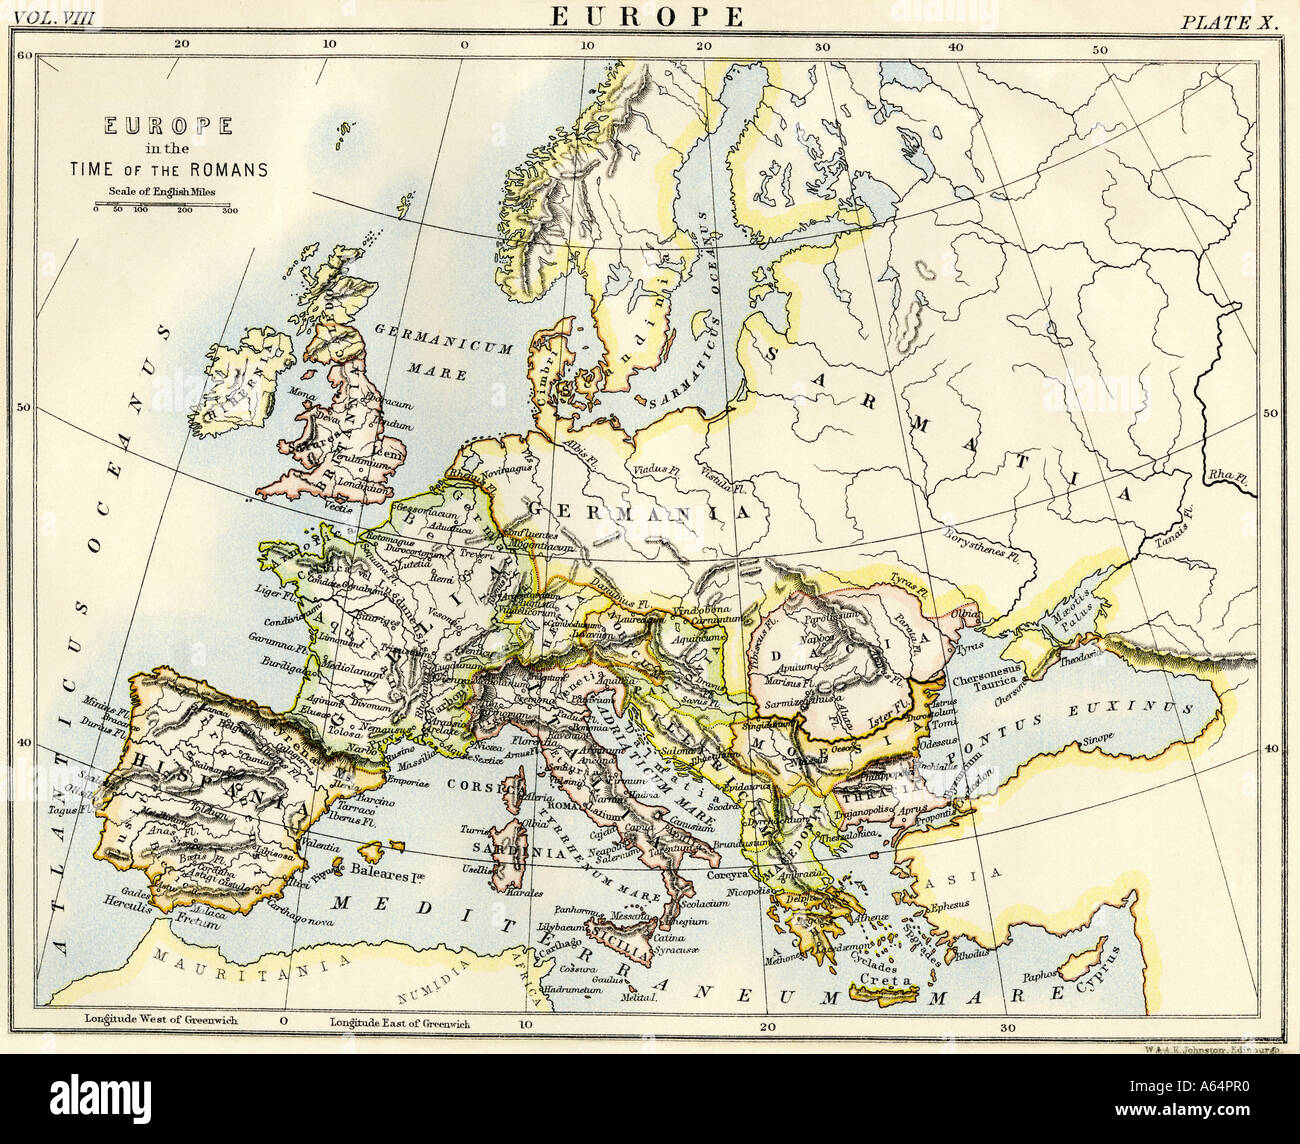 Map of Europe in the time of the Roman Empire. Color lithograph - Stock Image